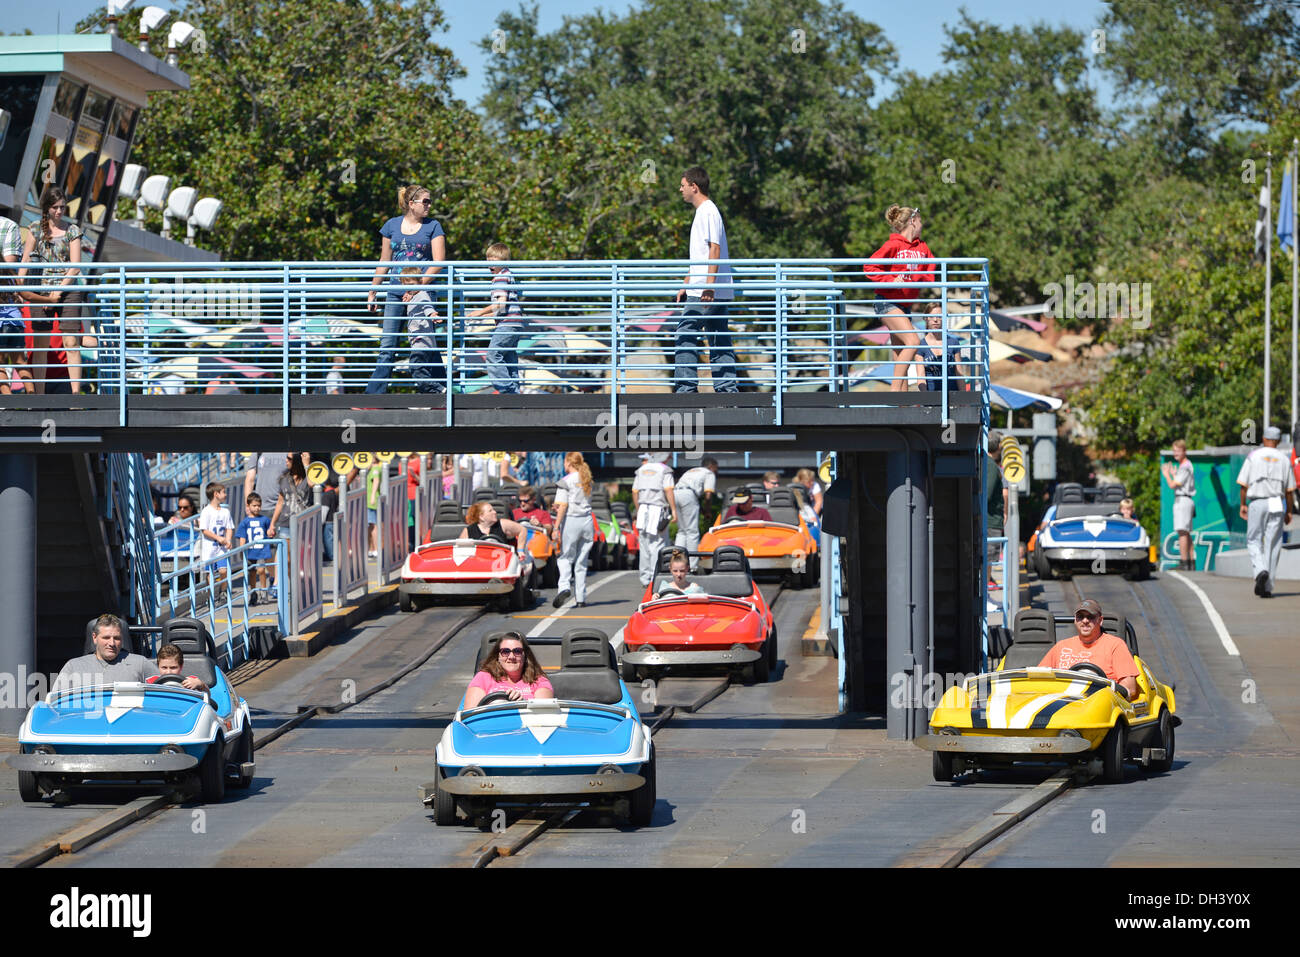 Race Car Ride In Tomorrowland